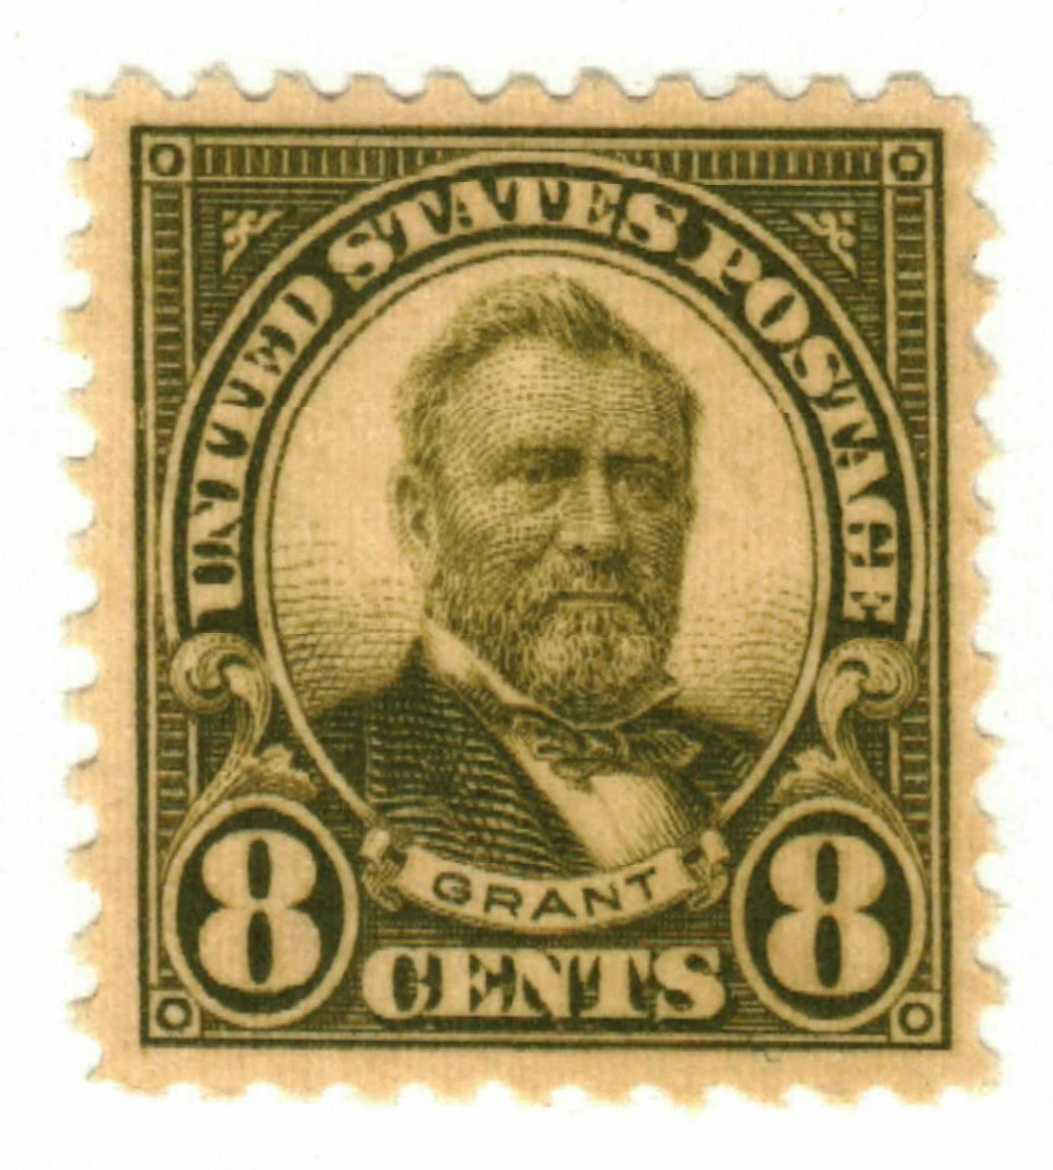 c grant olive green for at mystic stamp company